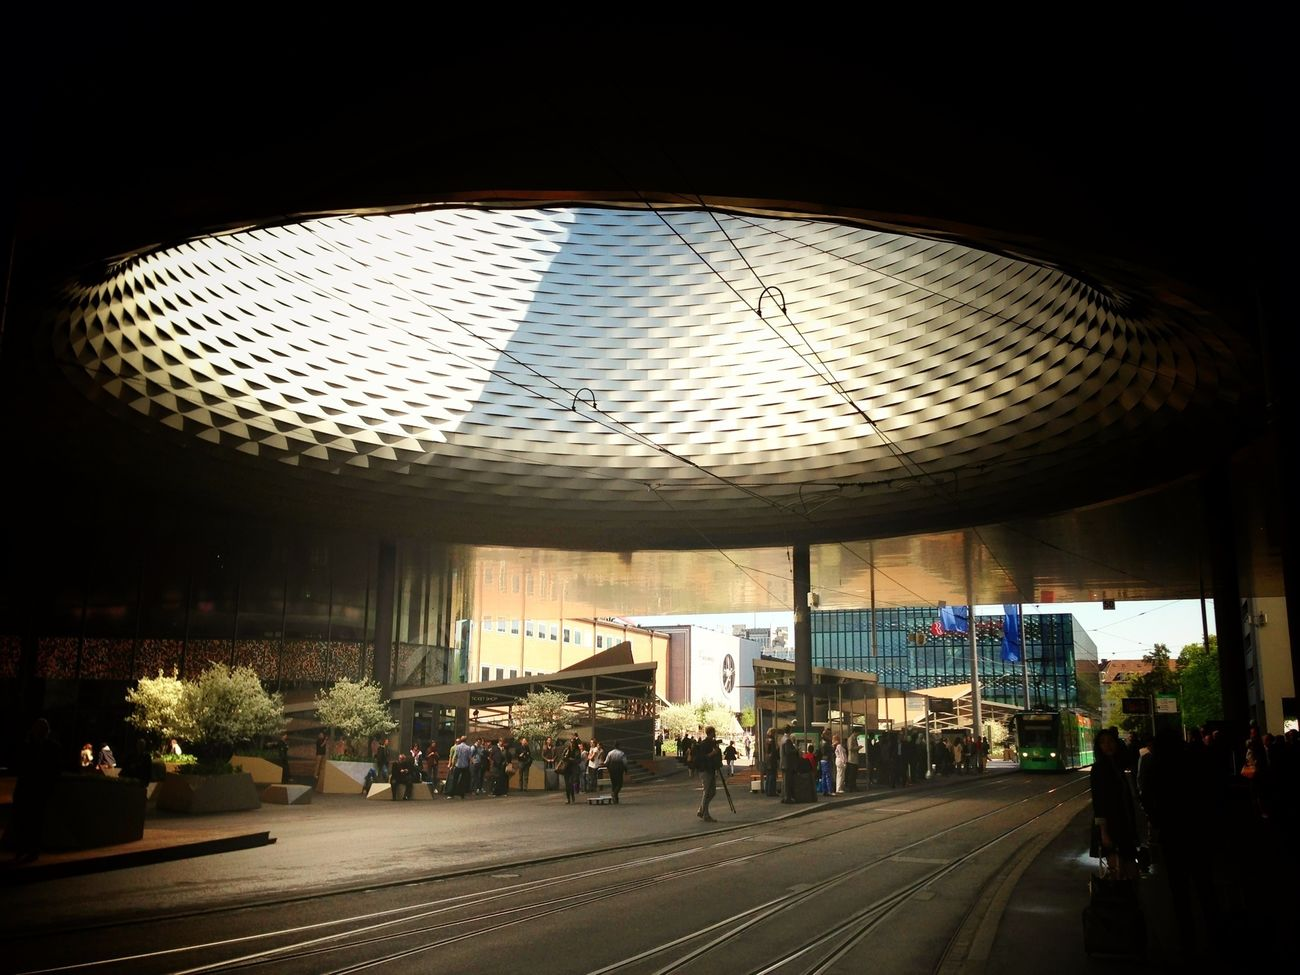 GetYourGuide Cityscapes Urban ic City 2.0 - The Future Of The City UFO